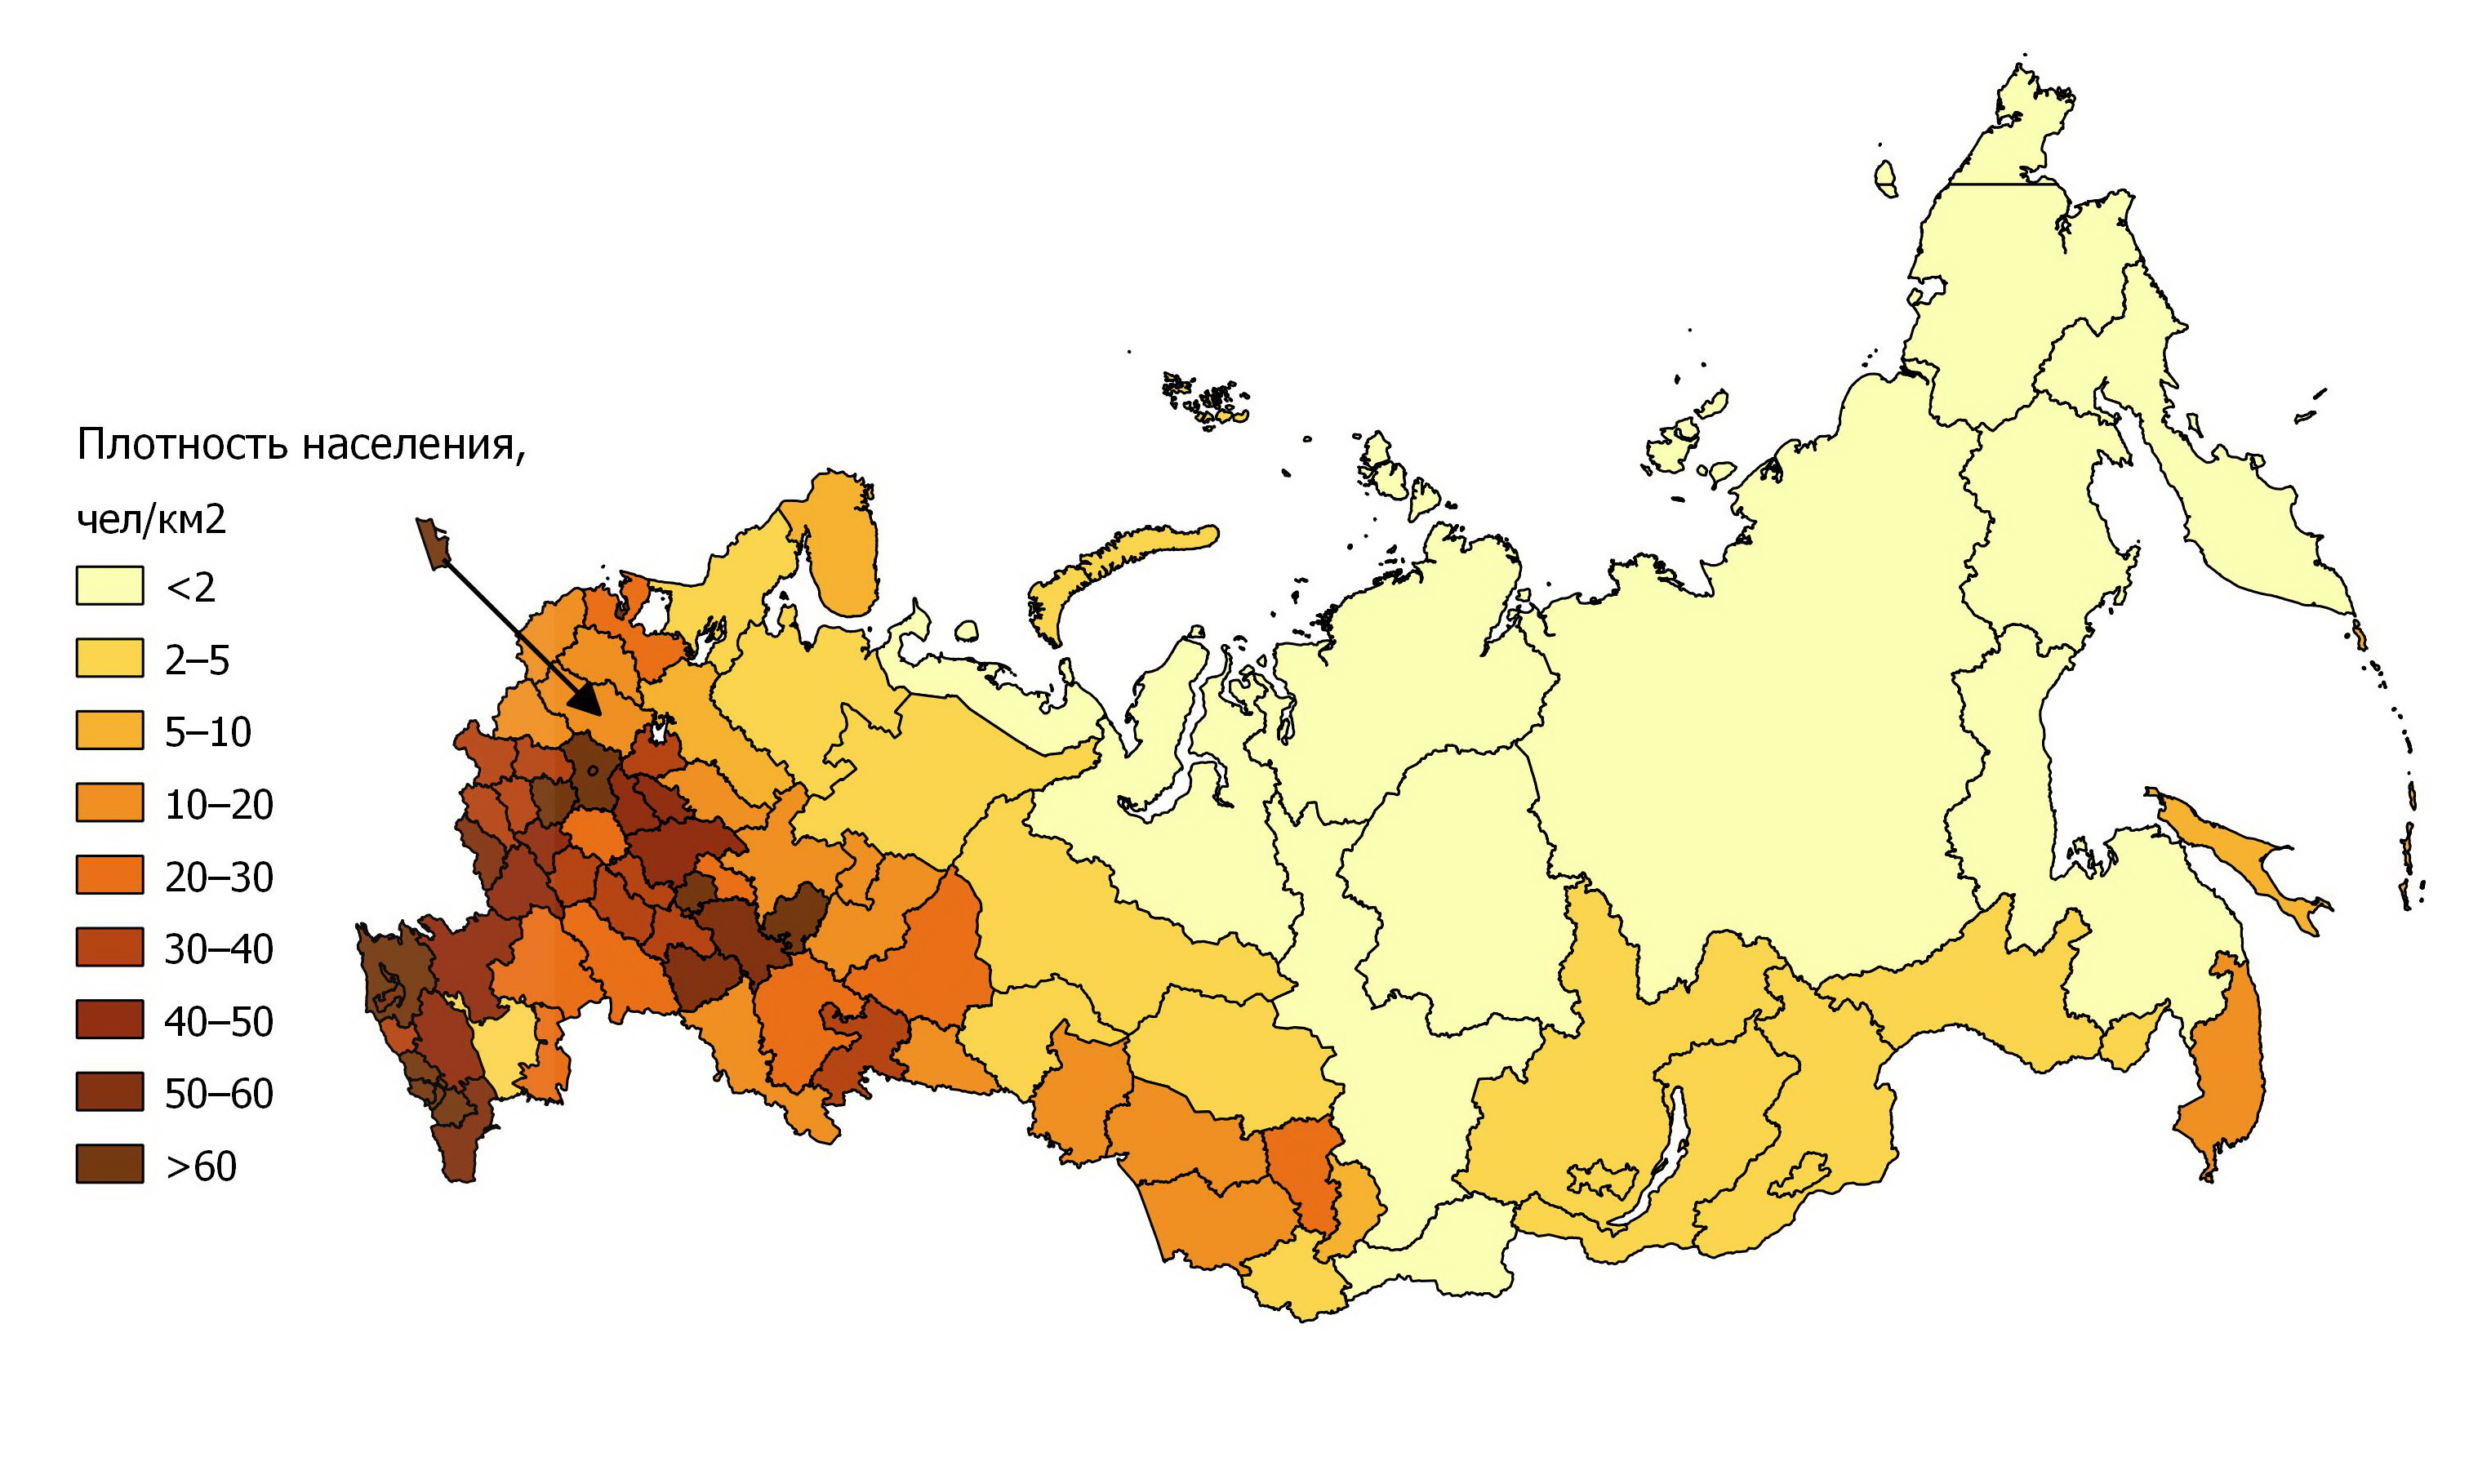 Russia's_population_density_by_region